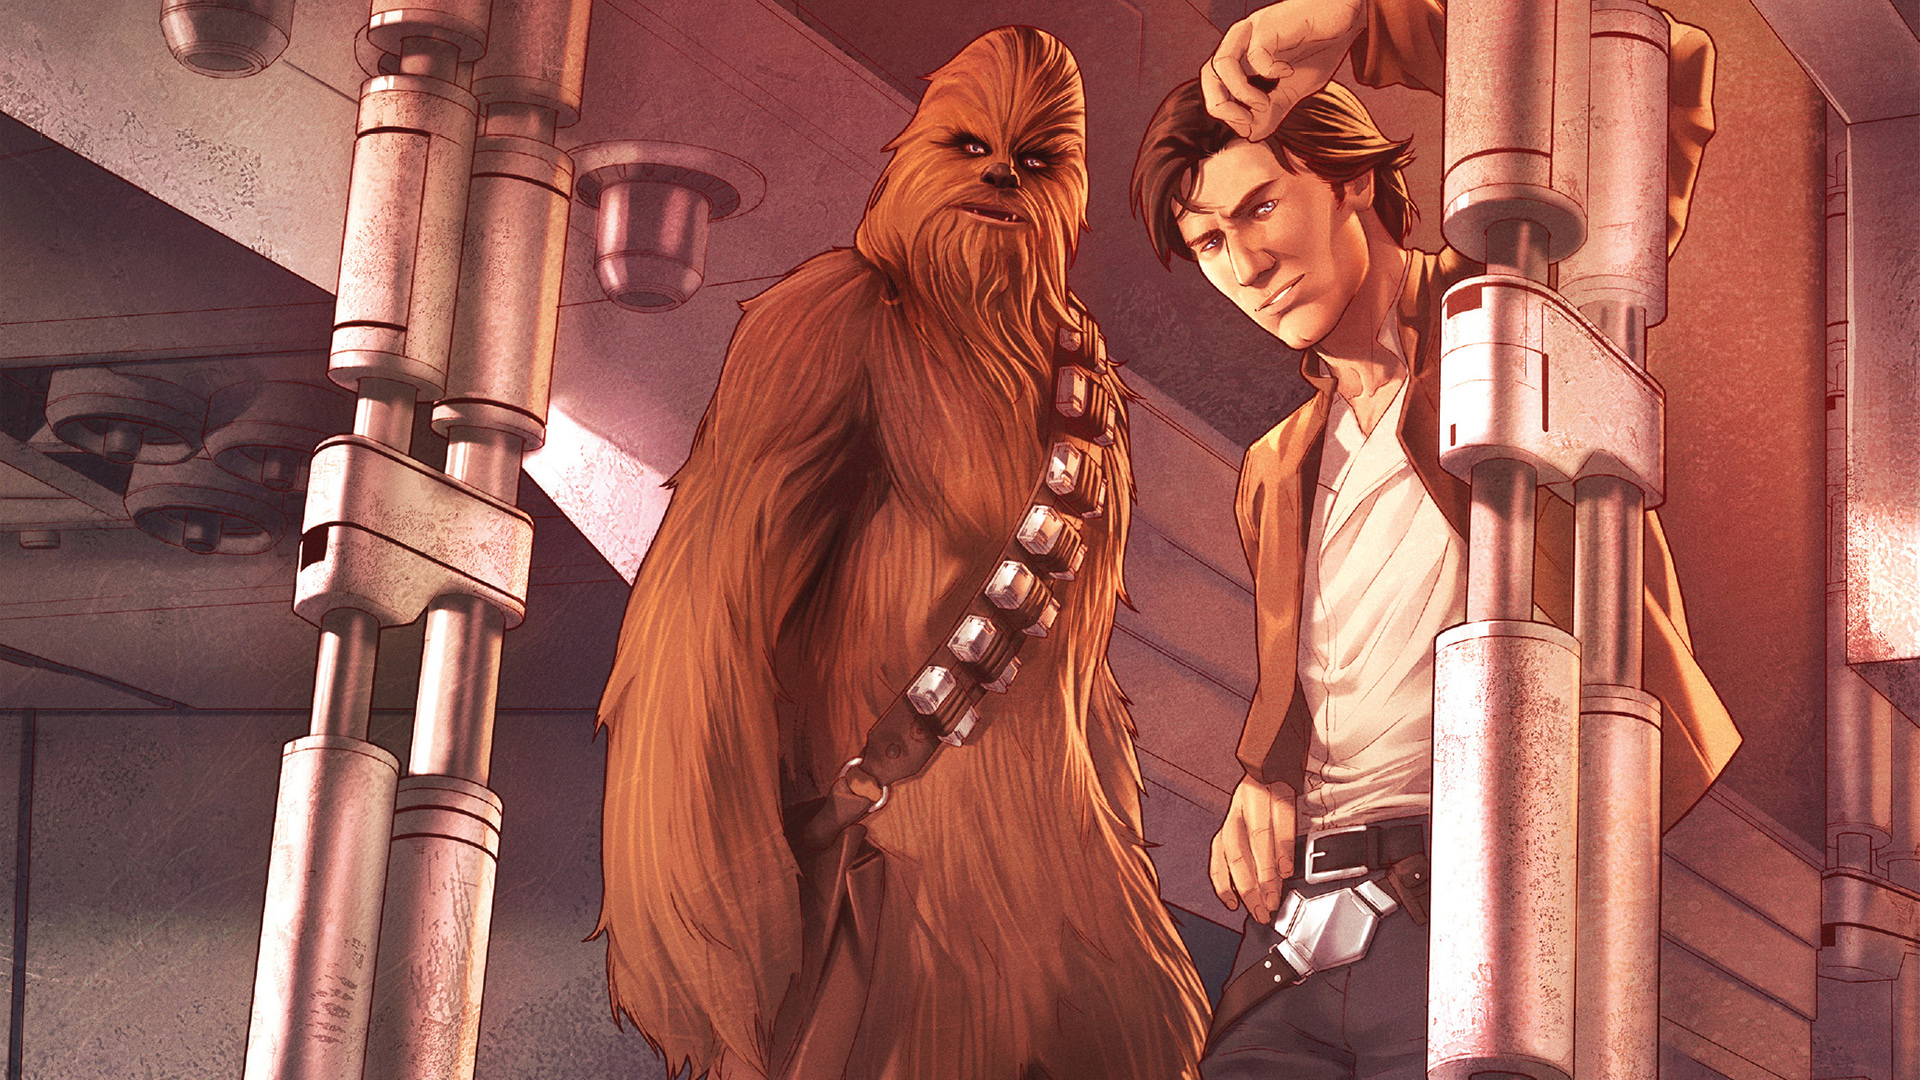 Star Wars Han Solo And Chewbacca Wallpaper Hd Superheroes 4k Wallpapers Images Photos And Background